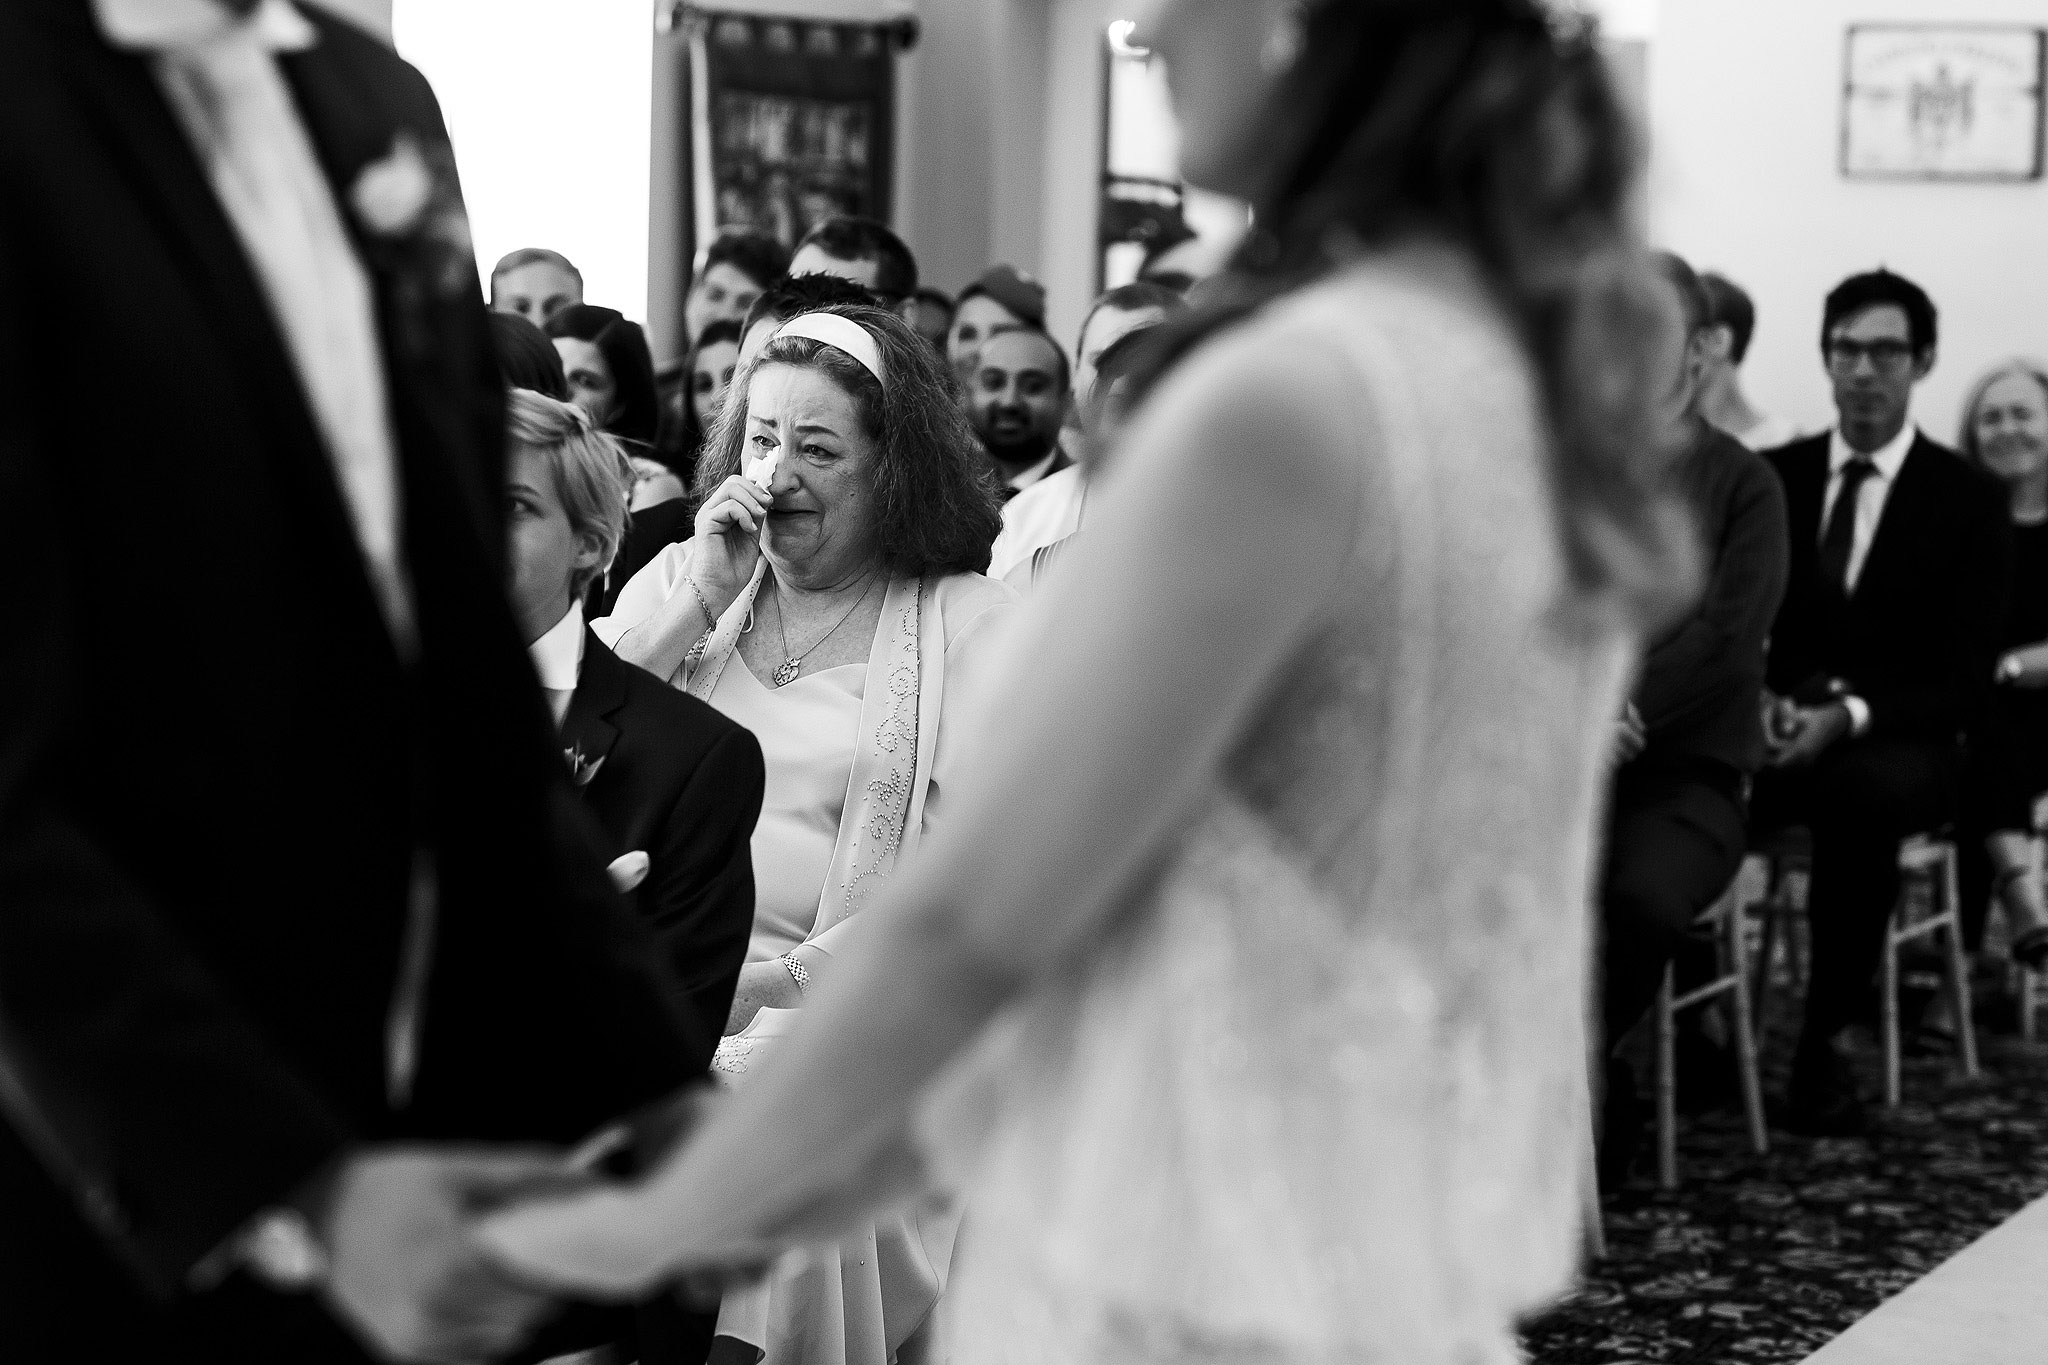 Emotional guests during wedding ceremony - The Villa at Wrea Green Wedding Photography - Toni Darcy Photography